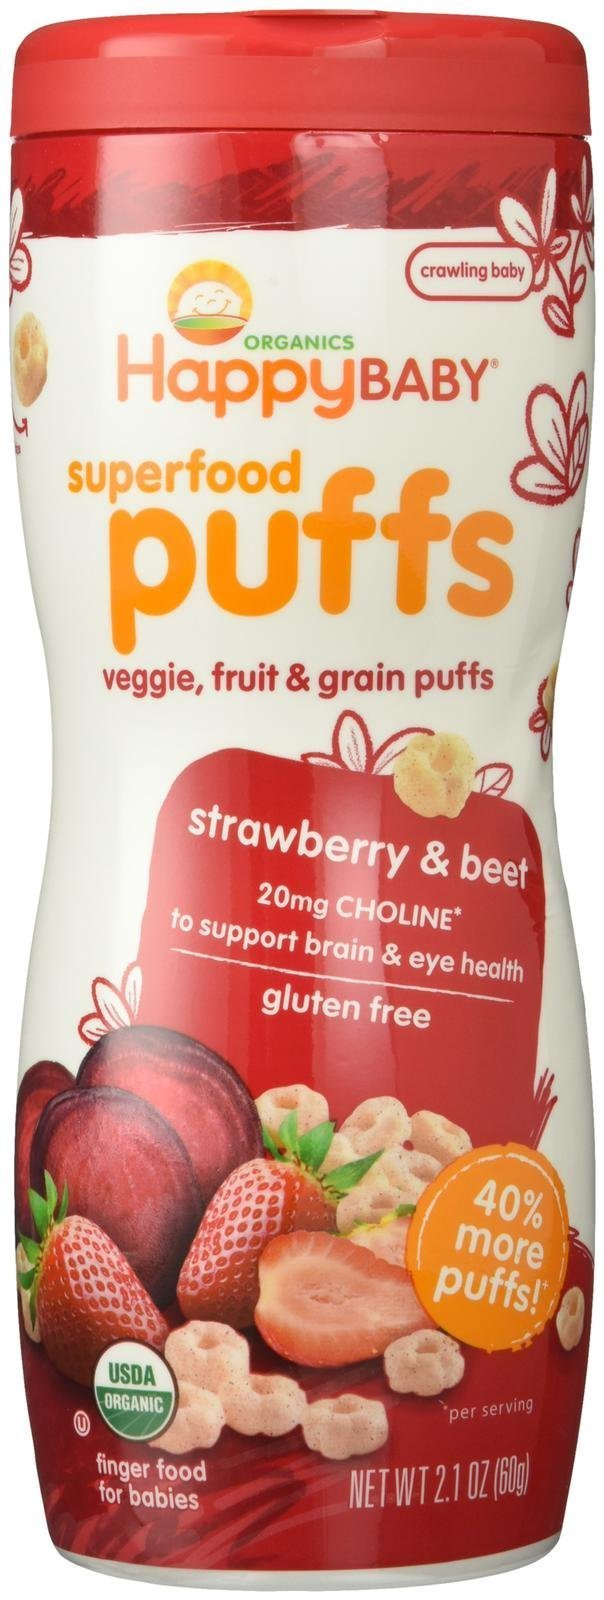 Happy Baby Organic Superfood Puffs Strawberry, 2.1 Ounce Canister Organic Baby or Toddler Snacks, Crunchy Fruit & Veggie Snack, Choline to Support Brain & Eye Health